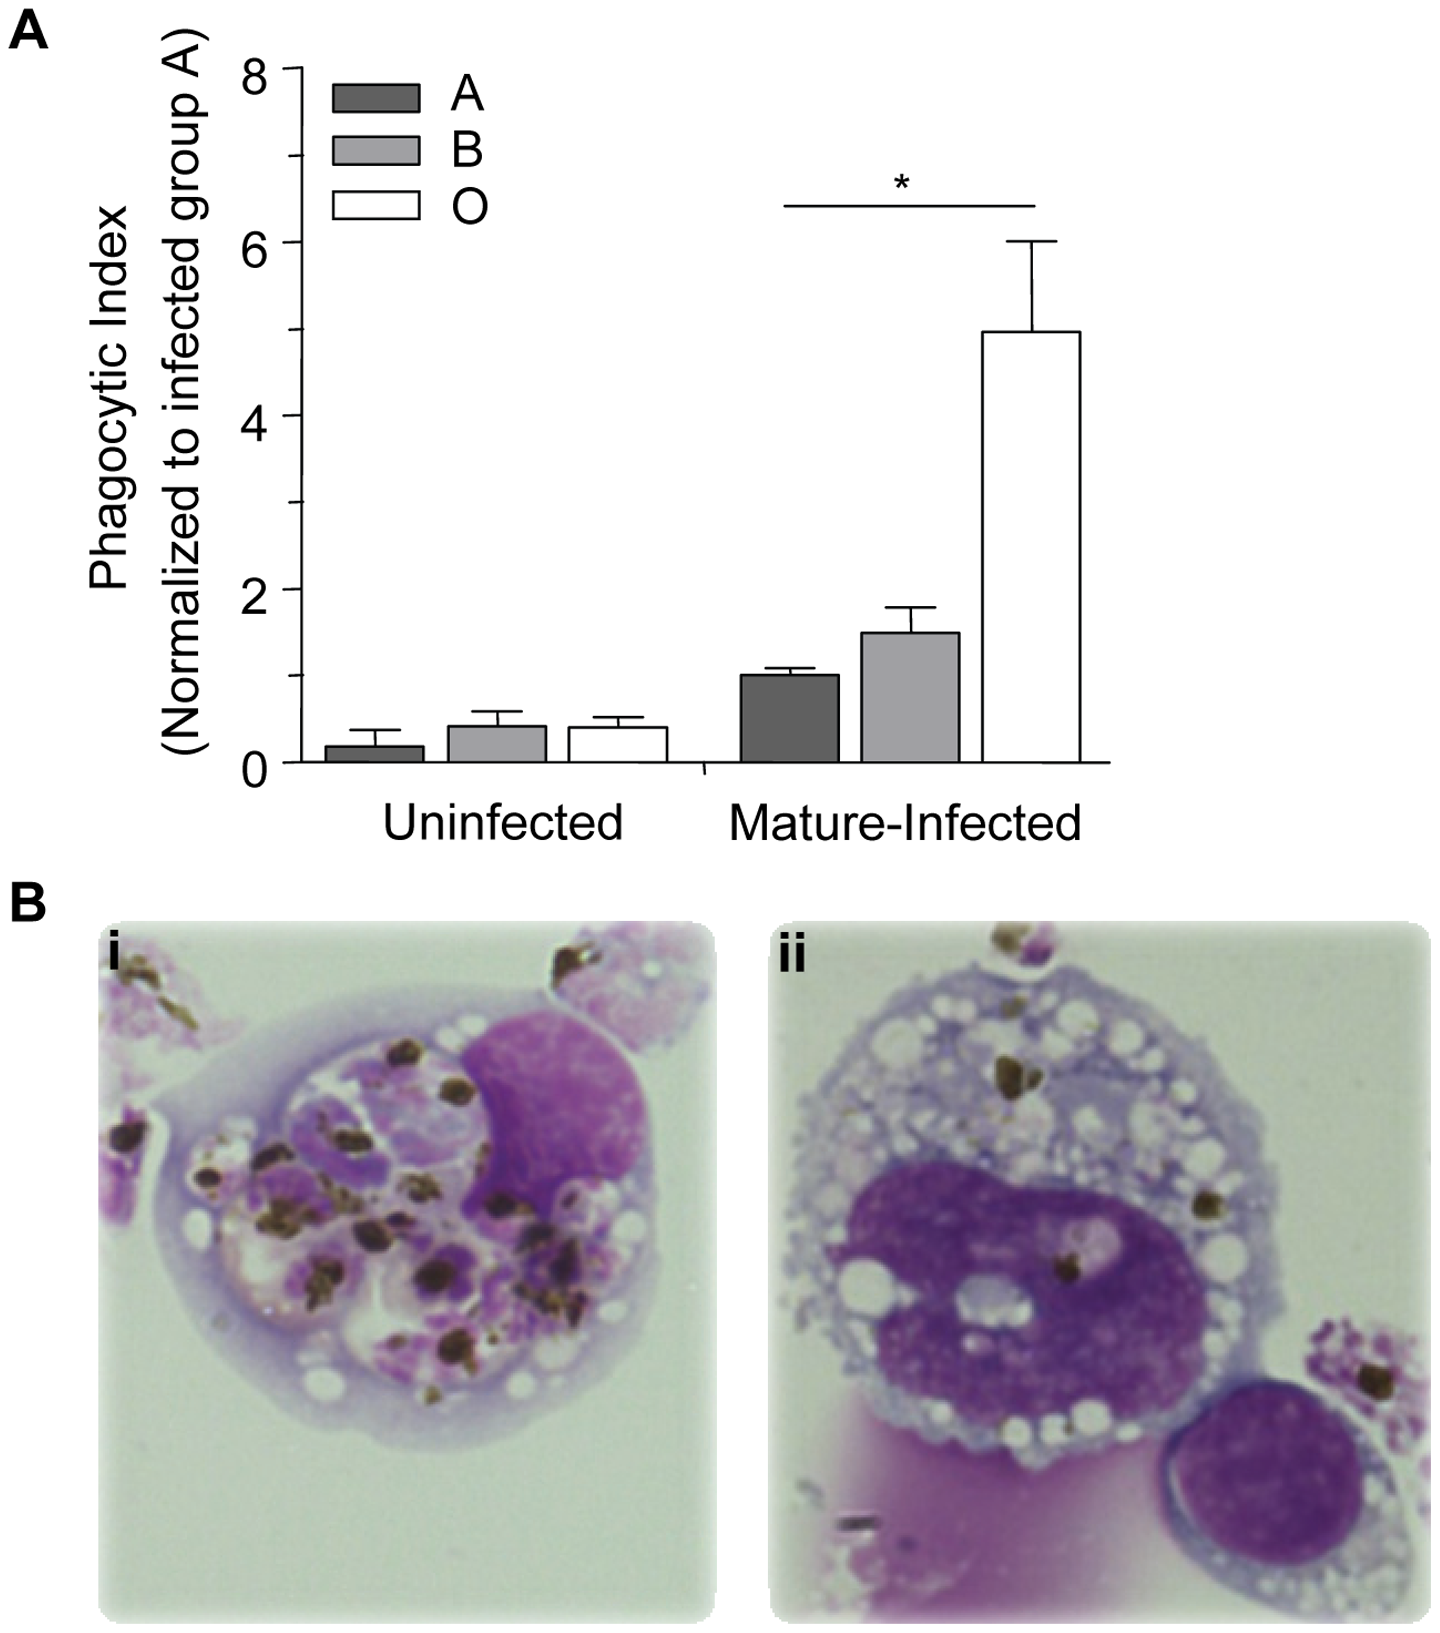 Murine monocytes phagocytose infected O erythrocytes more efficiently <i>in vivo</i> than infected A or B erythrocytes.